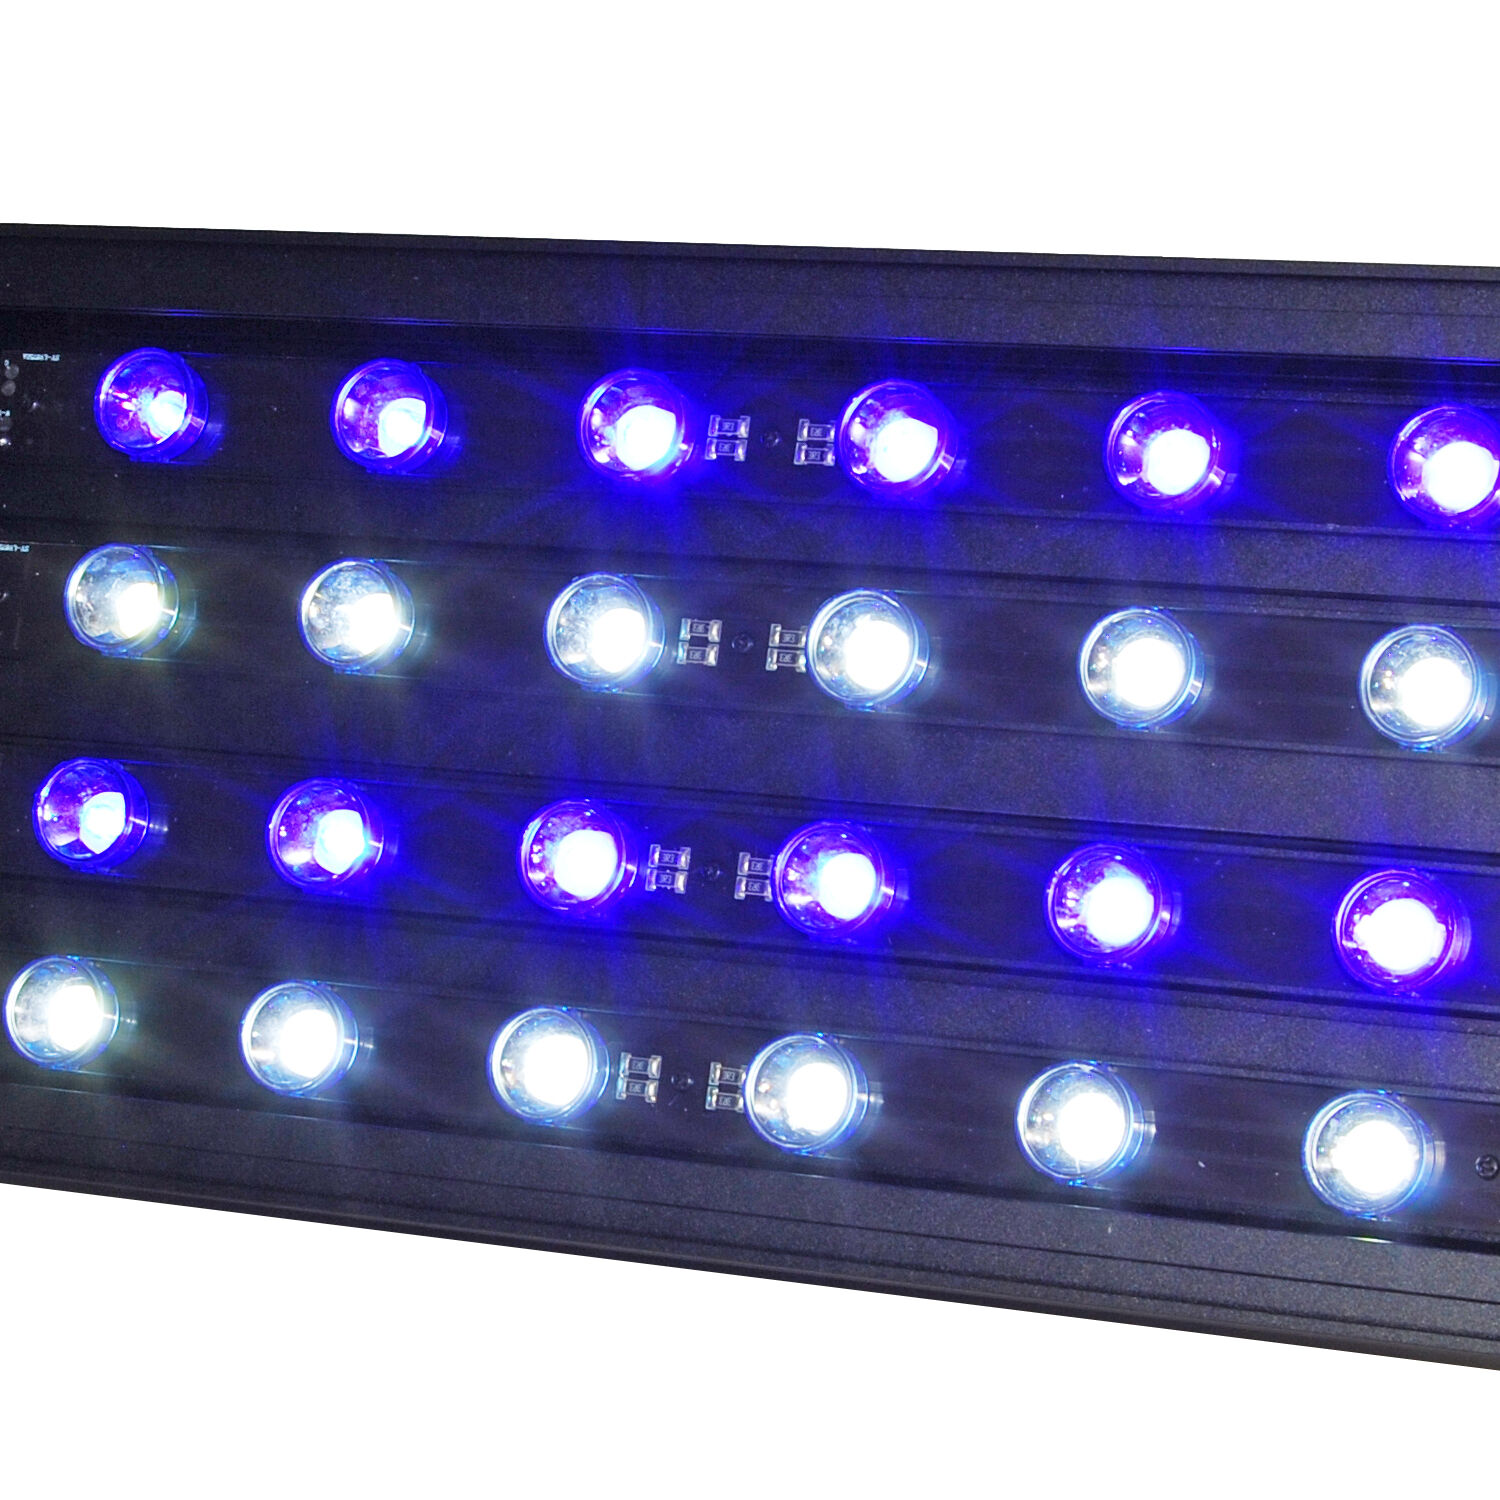 "Mh 48 Metal Halide T5 Aquarium Light 716w Coral Reef: SE Quad 18"" Timer LED Aquarium Light Marine Reef FOWLR"